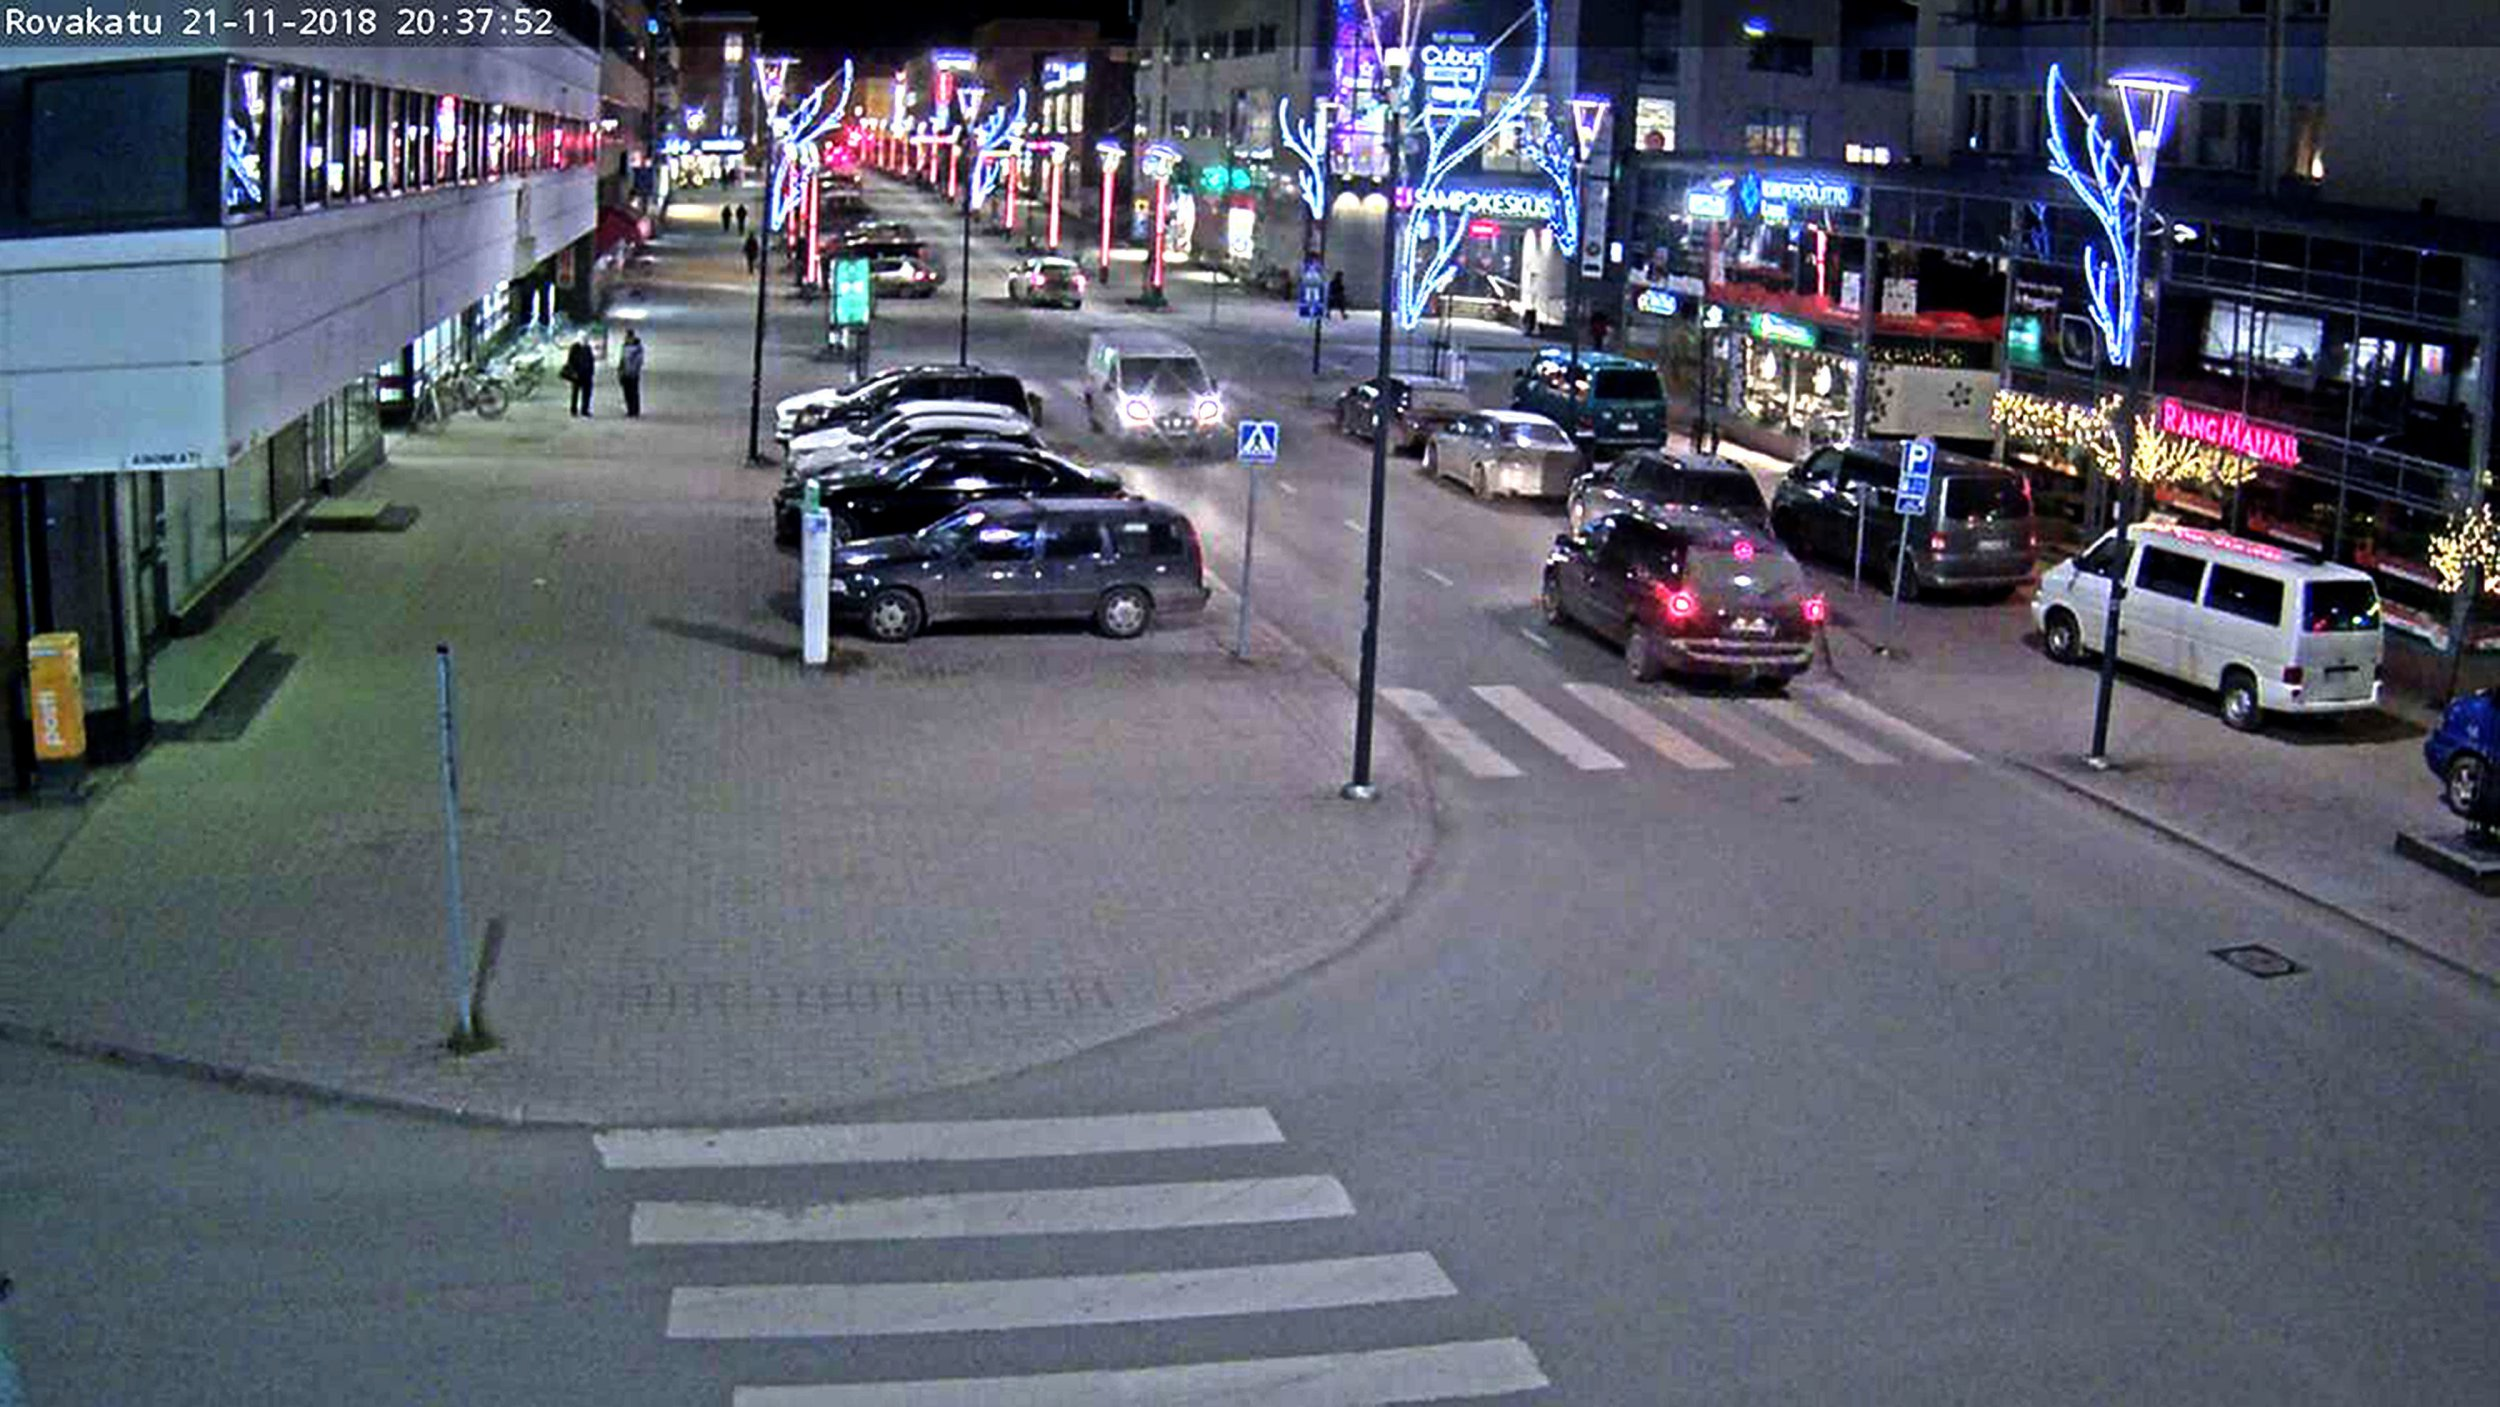 BEST QUALITY AVAILABLE Undated CCTV screengrab taken from the feed of Rovaniemi. Families hoping for a picture-perfect visit to Lapland were left wondering if their holidays would be spoiled as webcam images from the region showed barely any patches of white around a week before the winter season begins. PRESS ASSOCIATION Photo. Issue date: Wednesday November 21, 2018. There is little chance for snow in Rovaniemi in the next 10 days except perhaps on Sunday, according to the Finnish Meteorological Institute, although temperatures will be below freezing. See PA story WEATHER Cold Lapland. Photo credit should read: Rovaniemi/PA Wire NOTE TO EDITORS: This handout photo may only be used in for editorial reporting purposes for the contemporaneous illustration of events, things or the people in the image or facts mentioned in the caption. Reuse of the picture may require further permission from the copyright holder.